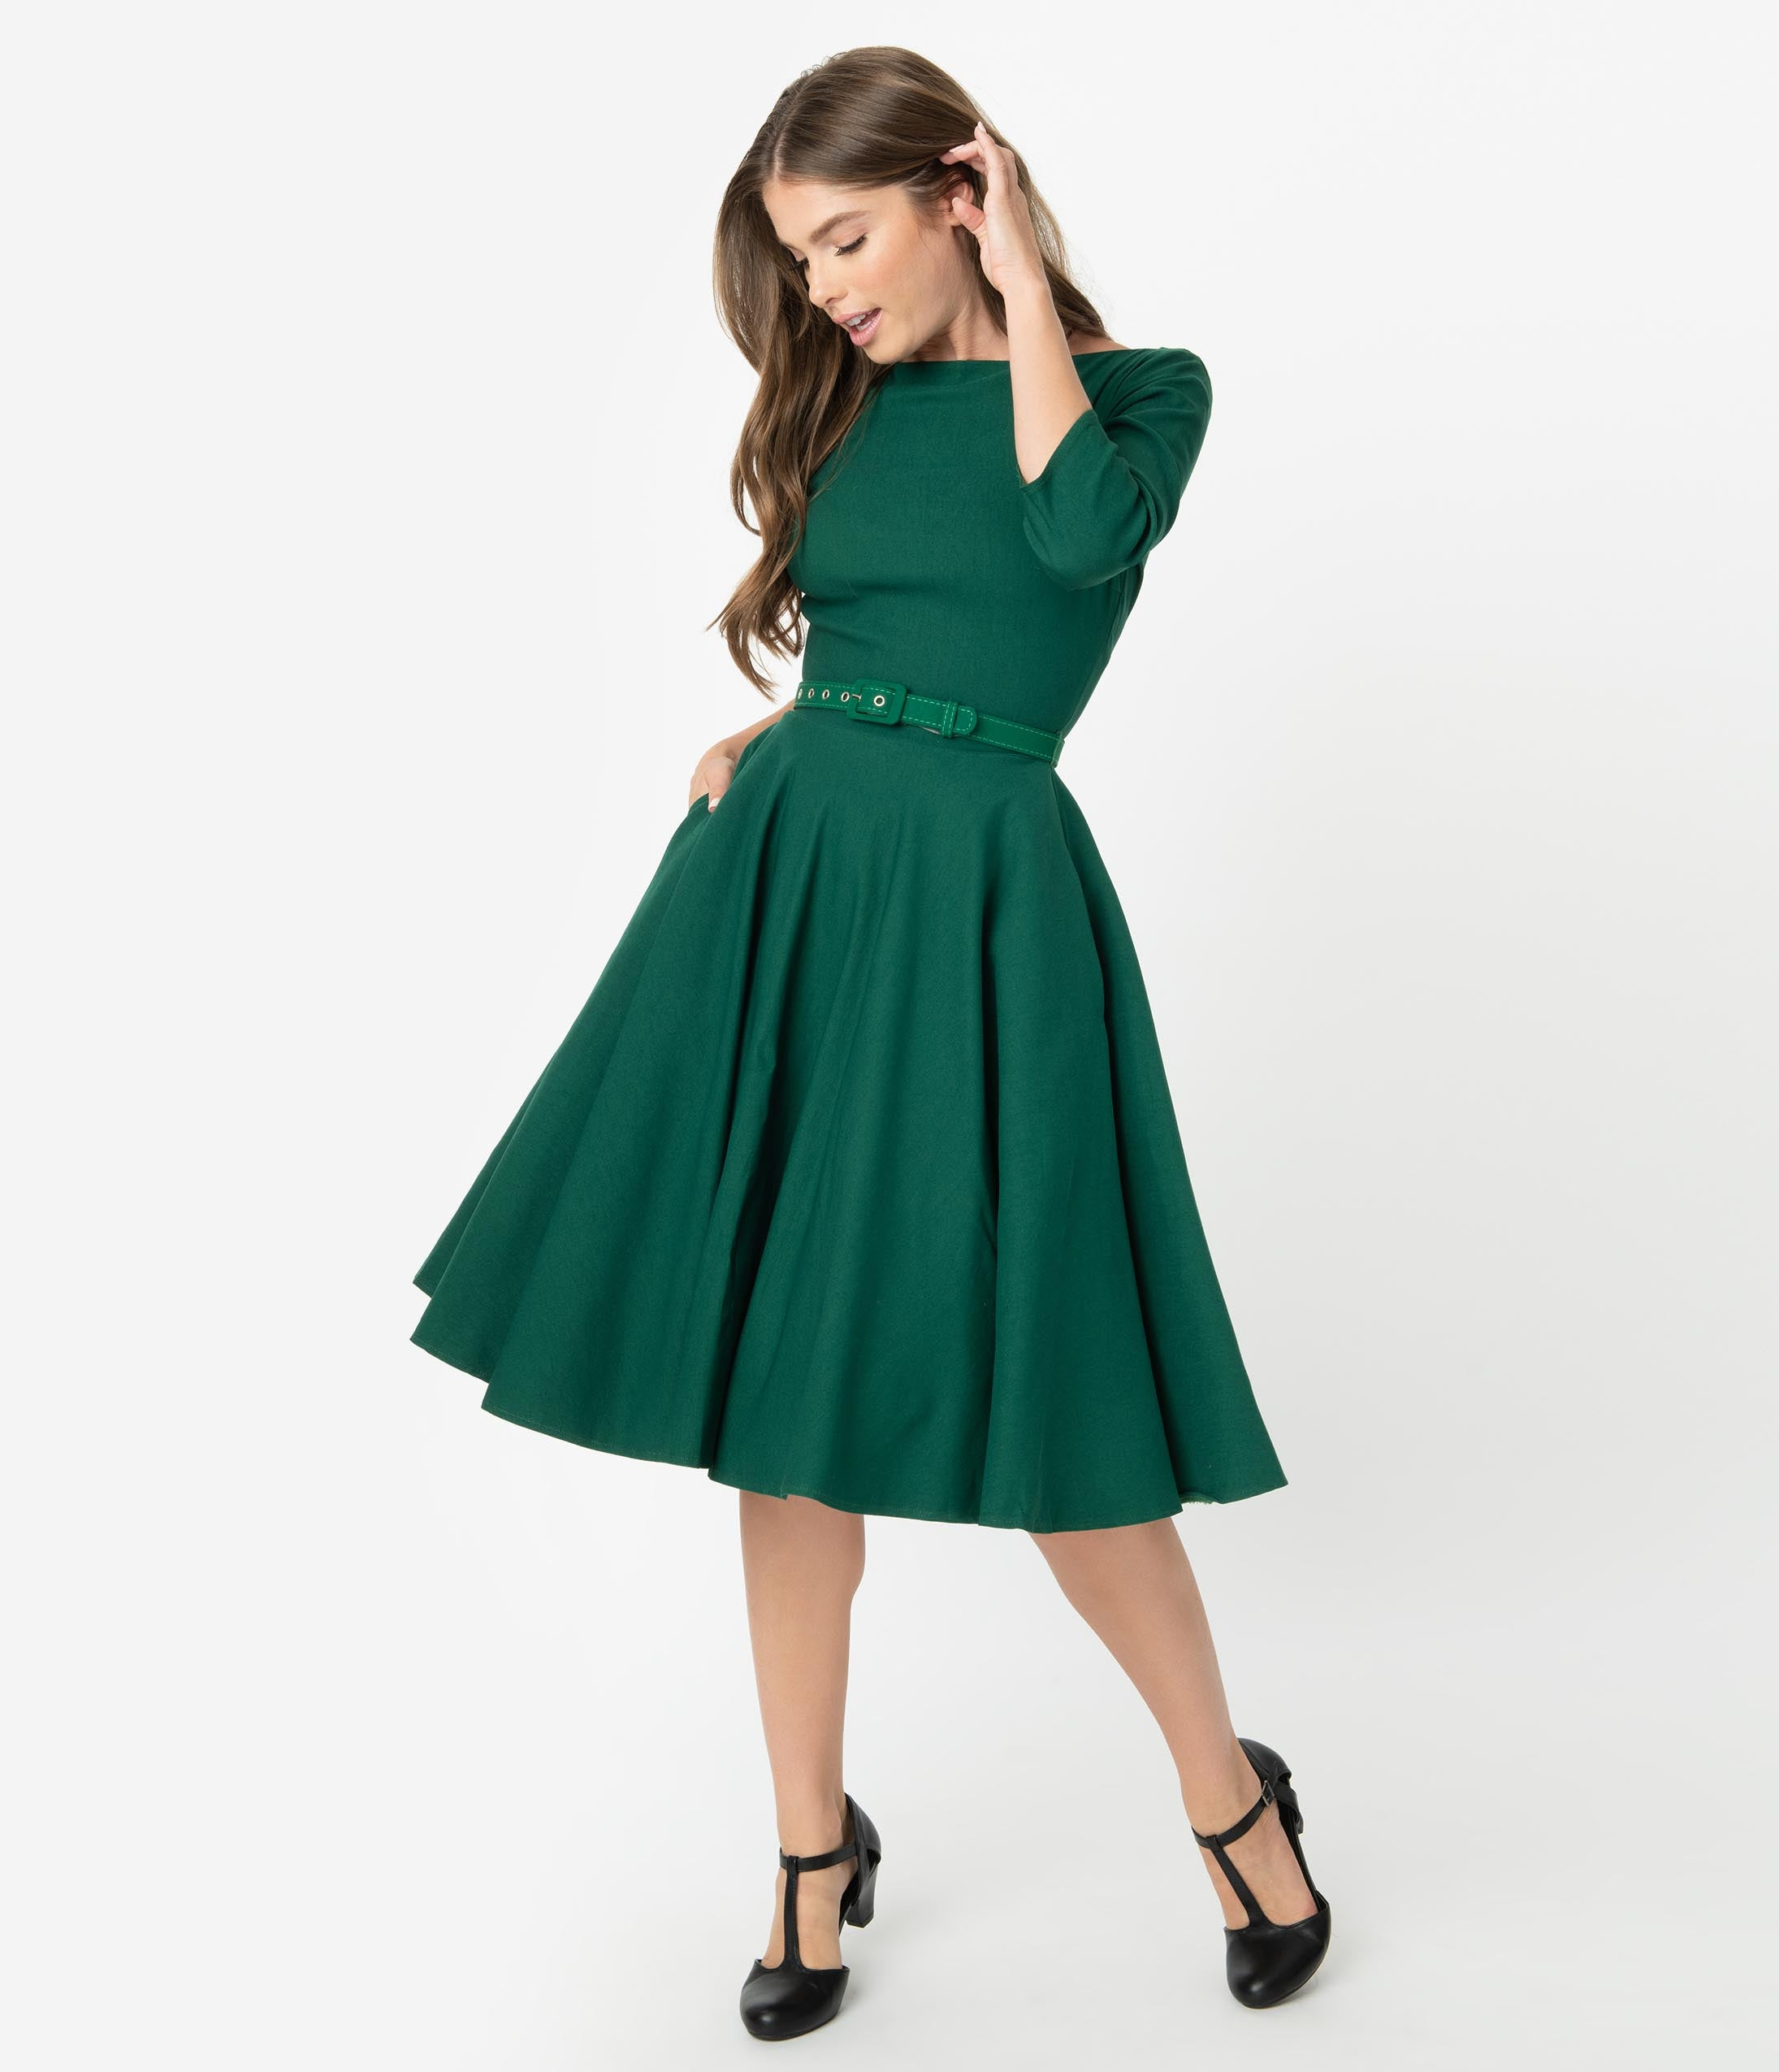 Vintage Christmas Gift Ideas for Women Unique Vintage 1950S Style Emerald Green Stretch Sleeved Devon Swing Dress $88.00 AT vintagedancer.com